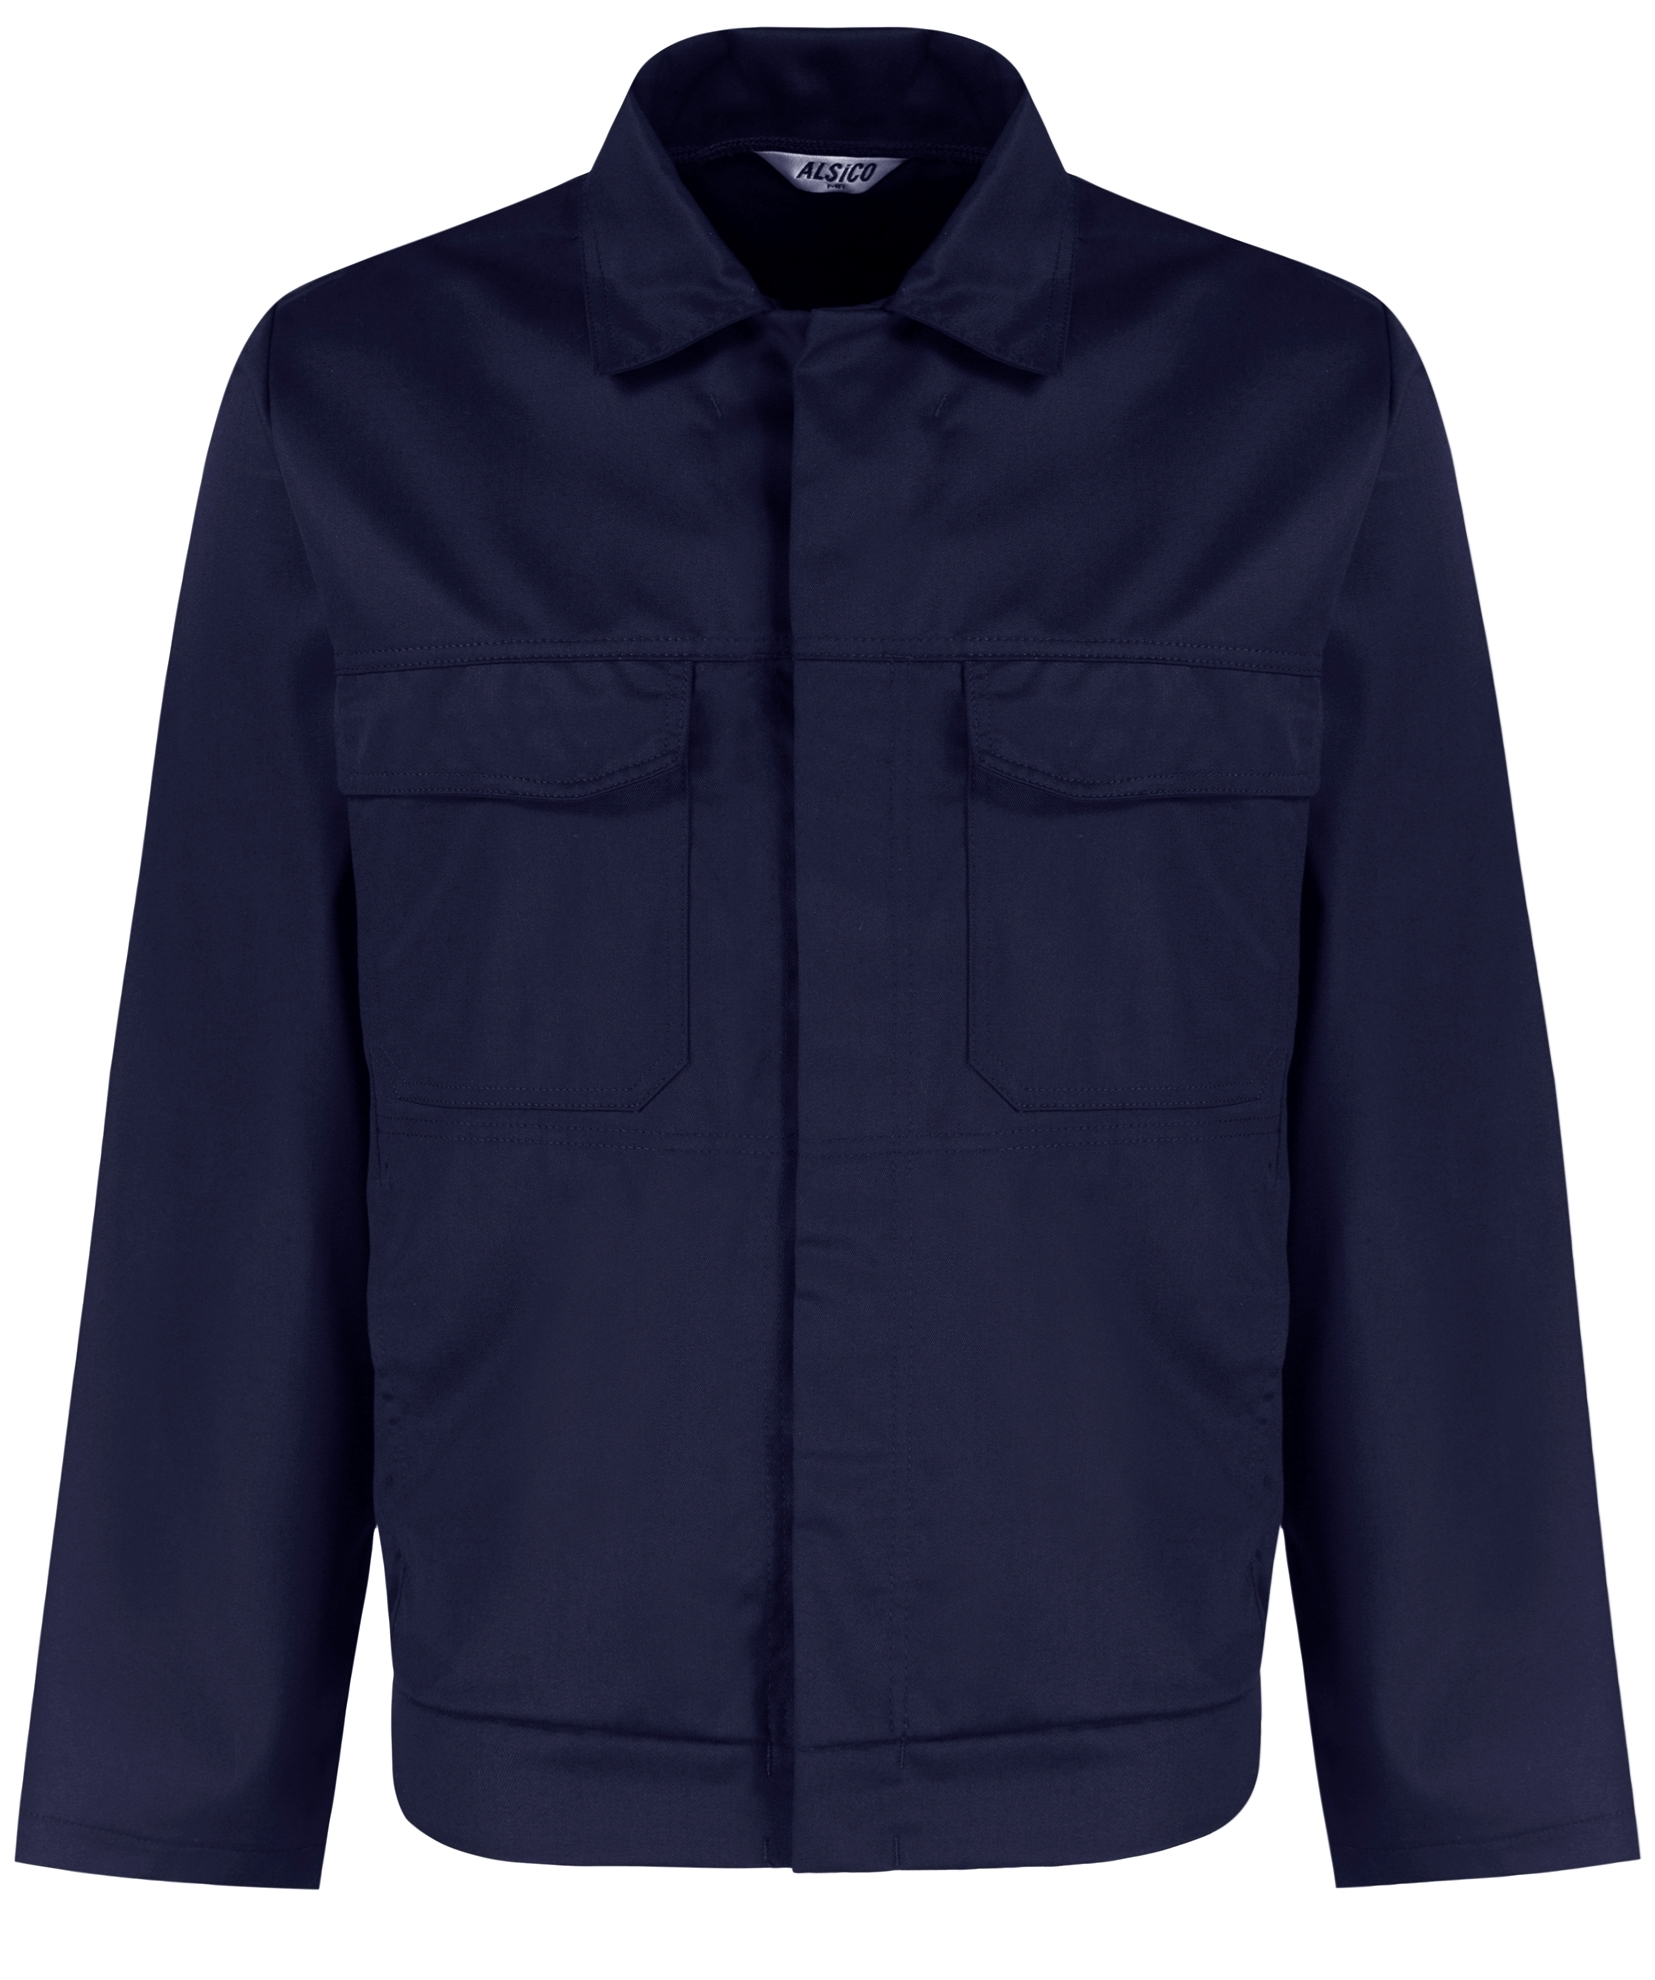 Picture of Polycotton Stud Jacket - Navy